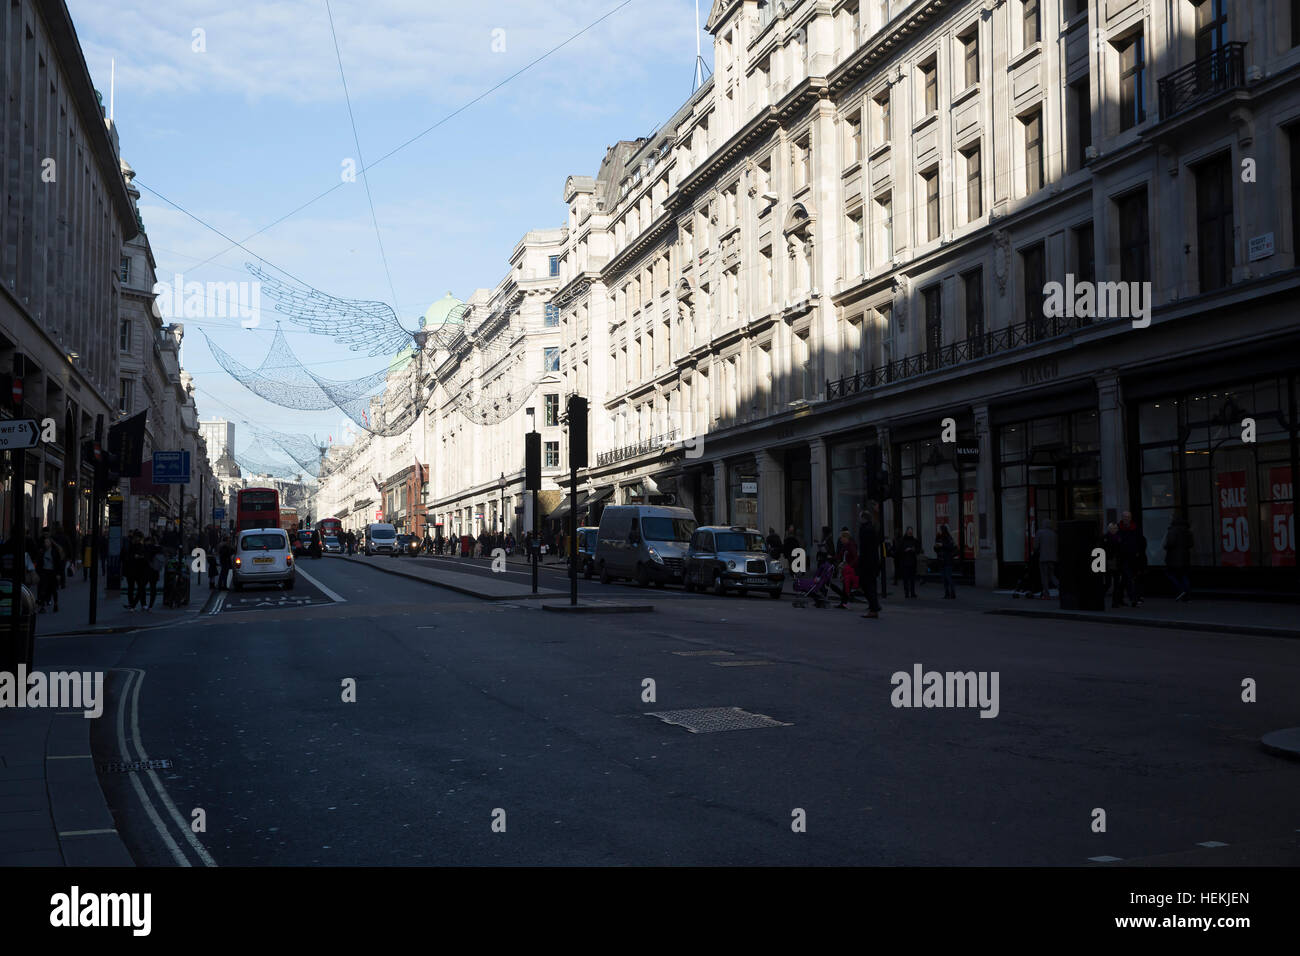 London, UK. 22nd Dec, 2016. Blue skies over Regent Street in London © Keith Larby/Alamy Live News - Stock Image